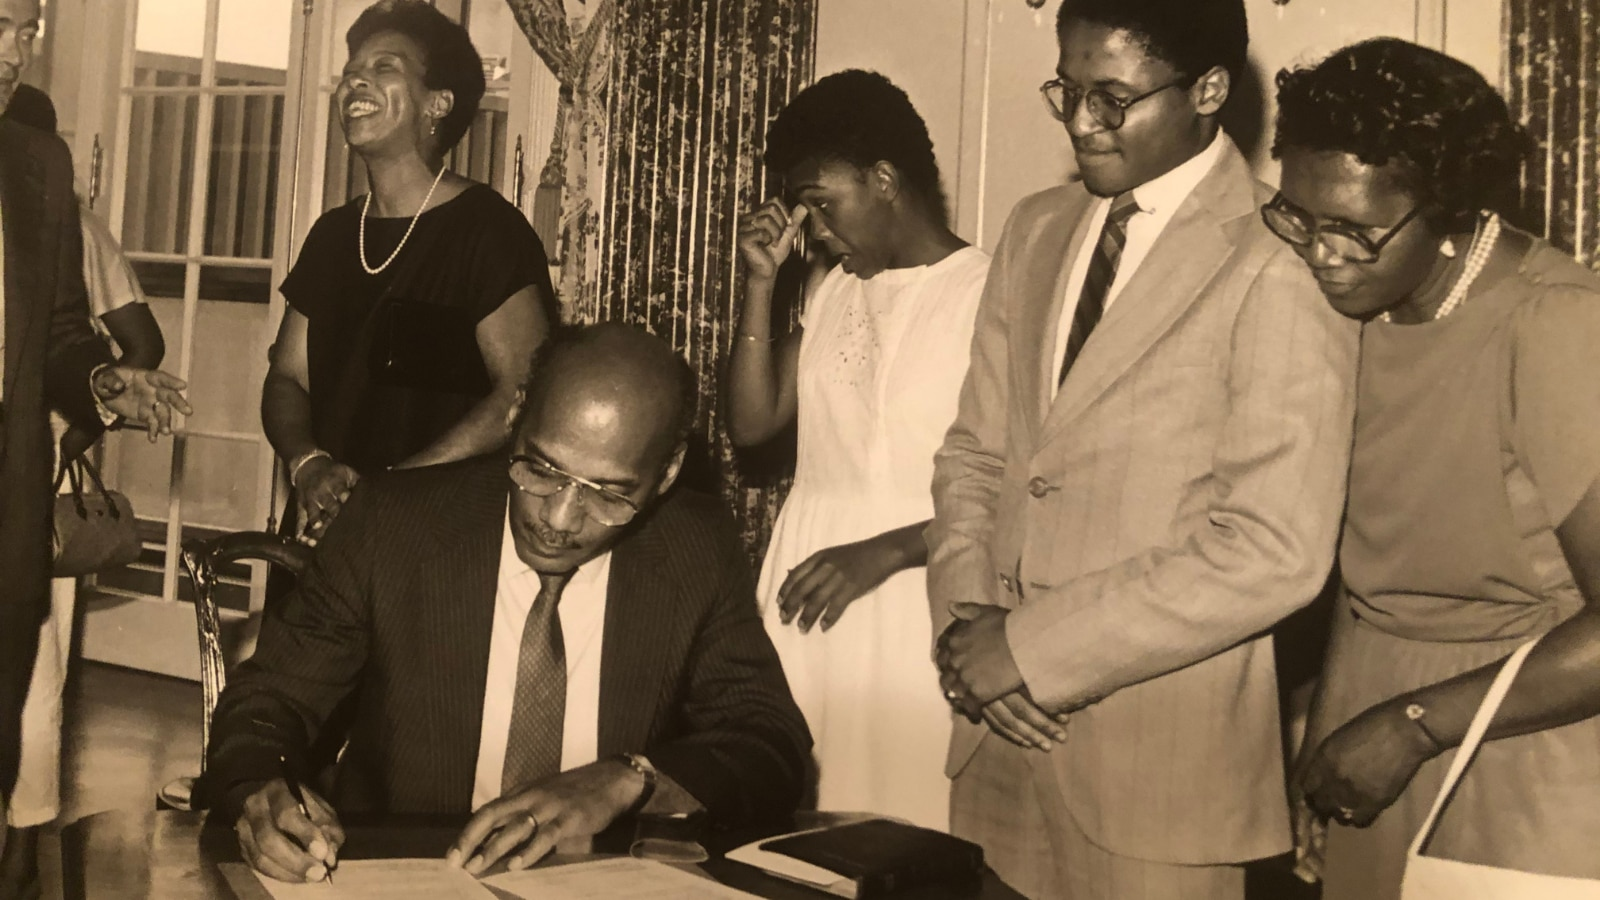 Irv Hicks Jr., along with the Hicks family, witnesses his father, Irvin Hicks, Sr. sign the papers to serve as U.S. Ambassador to Seychelles in 1985. This was Hicks Sr.'s first of three ambassadorships, including the Seychelles, Deputy Representative to the UN, and Ethiopia.